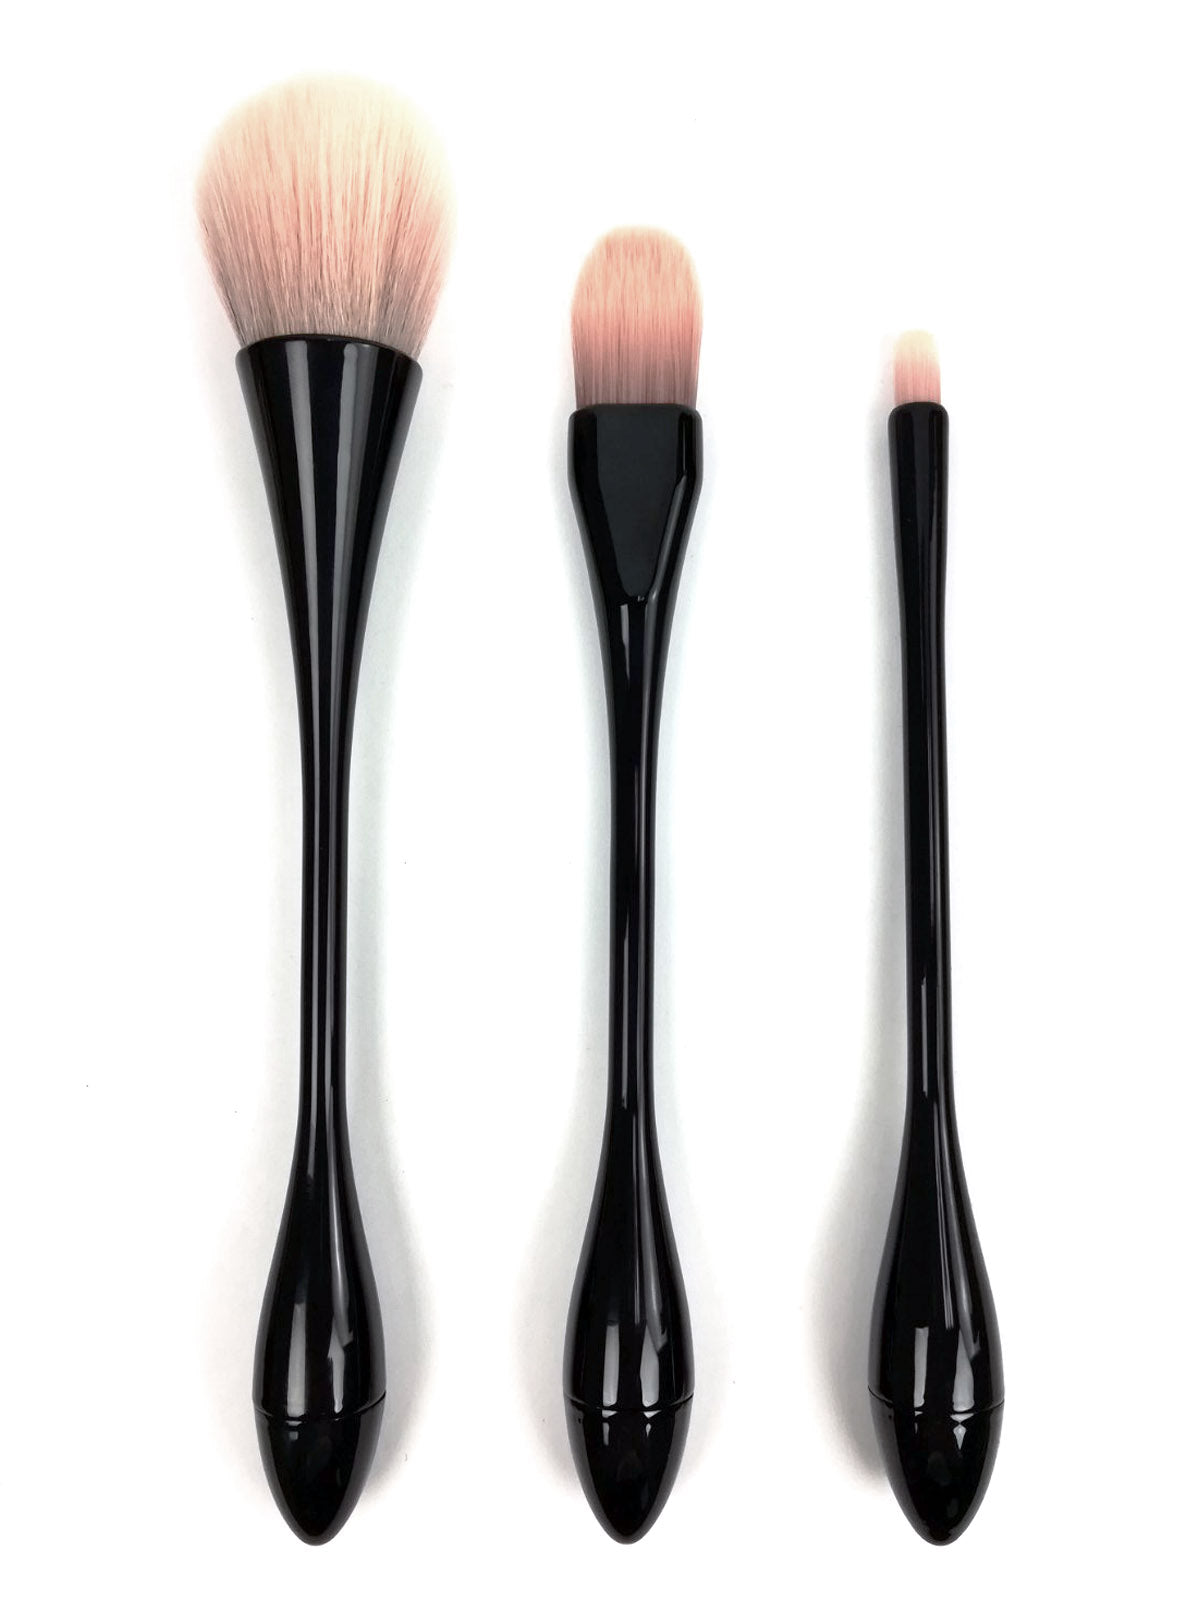 Celavi Essentials Hour Glass Makeup Brush Set Cosmetic Tools for Face (3 Brush Set)